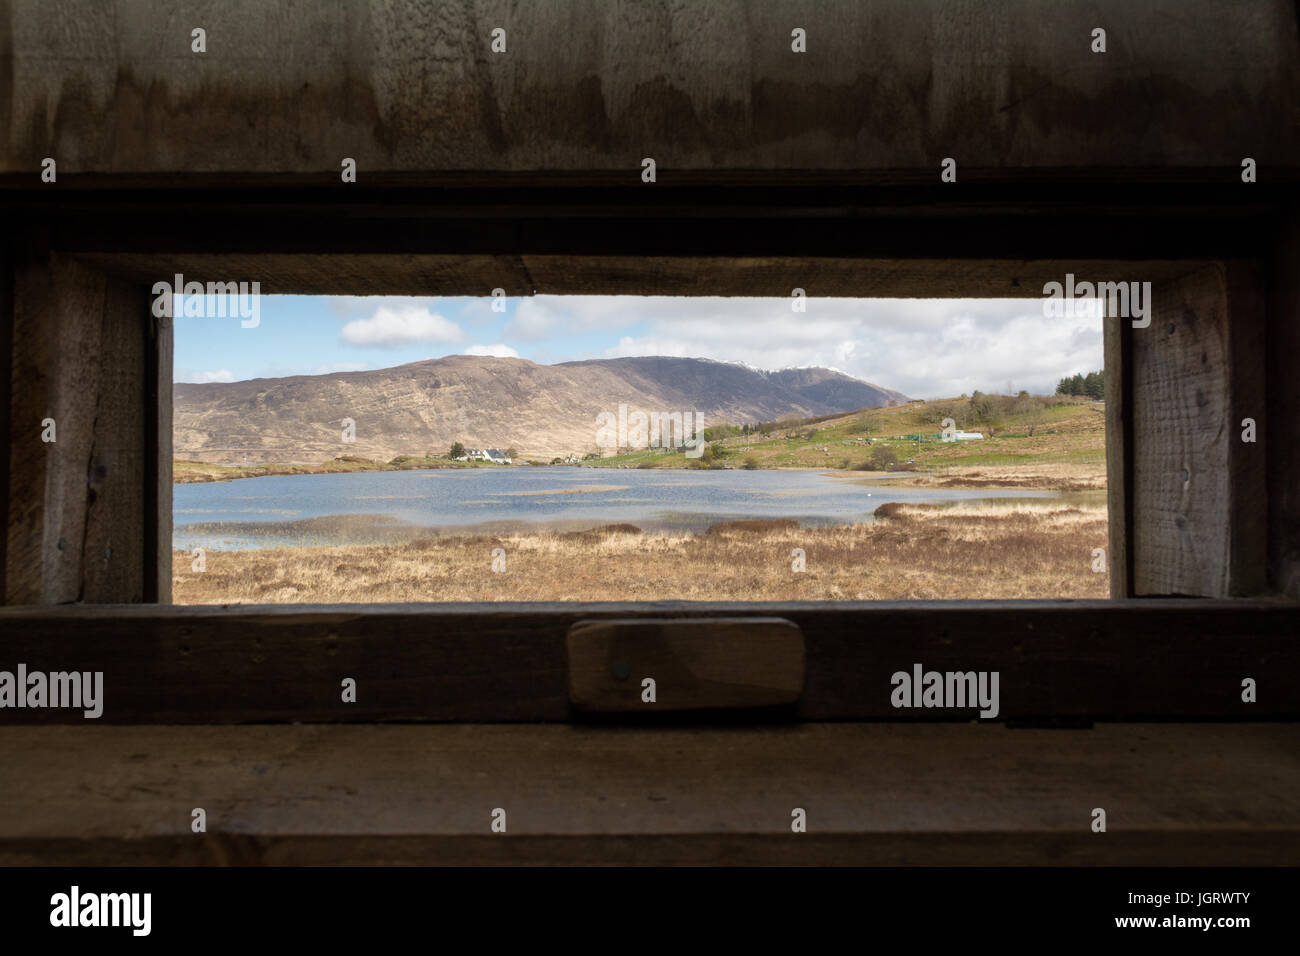 Milltown Loch, Applecross, Scotland - view from inside the nature hide - Stock Image